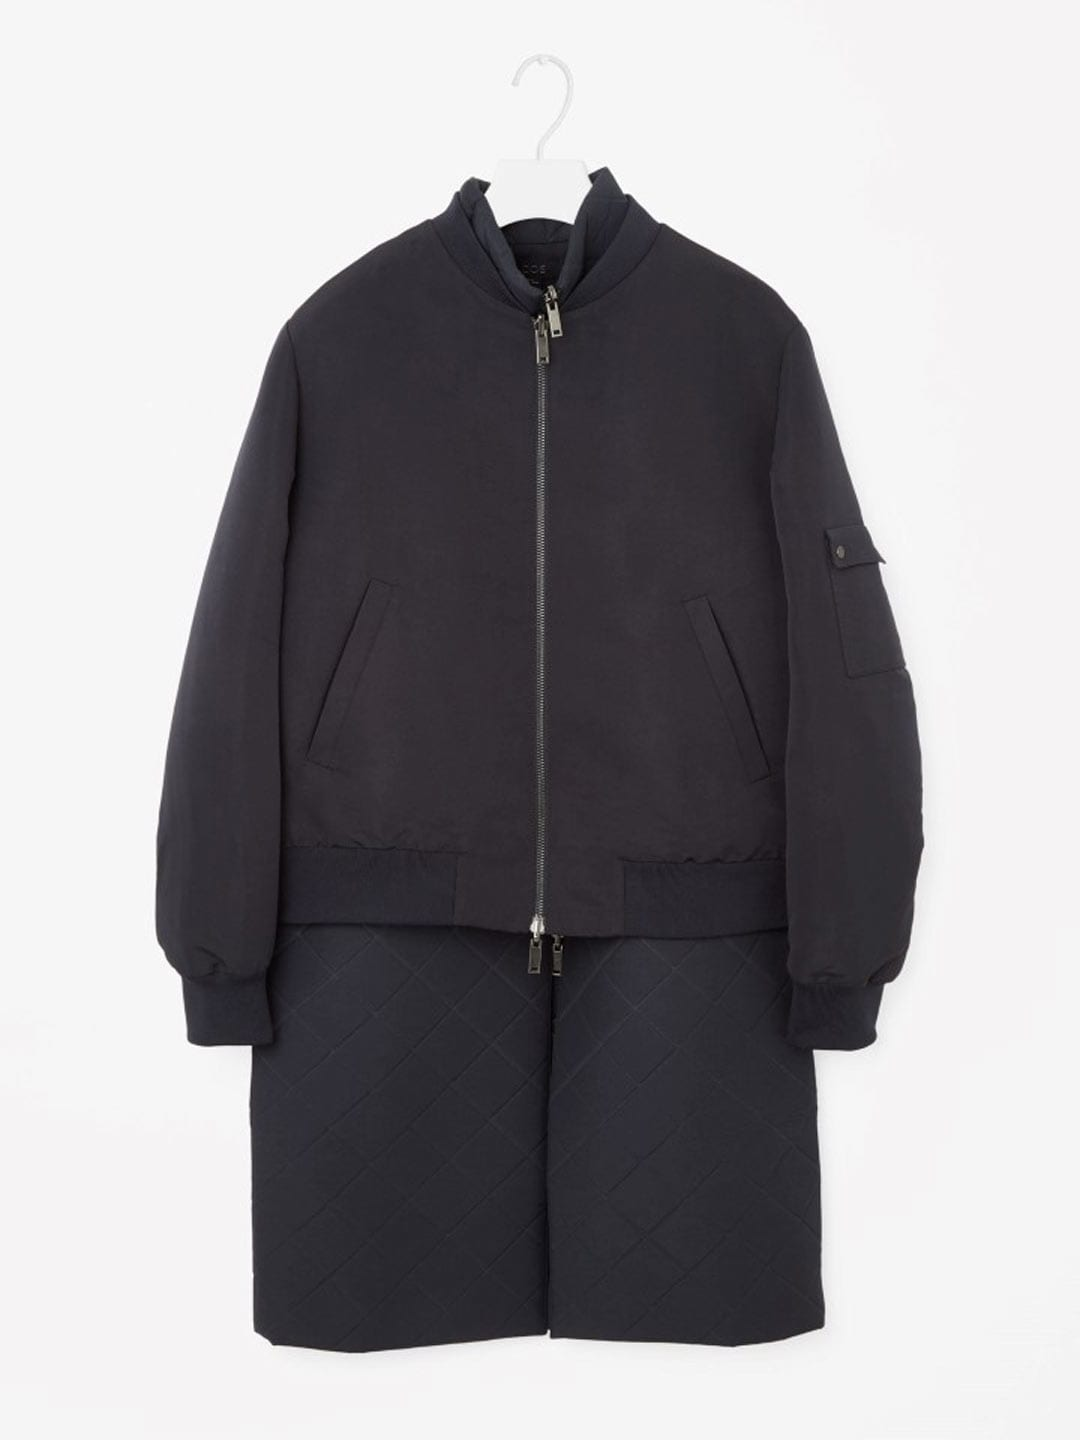 Best Winter Coats | COS Layered Bomber Coat in Navy Blue